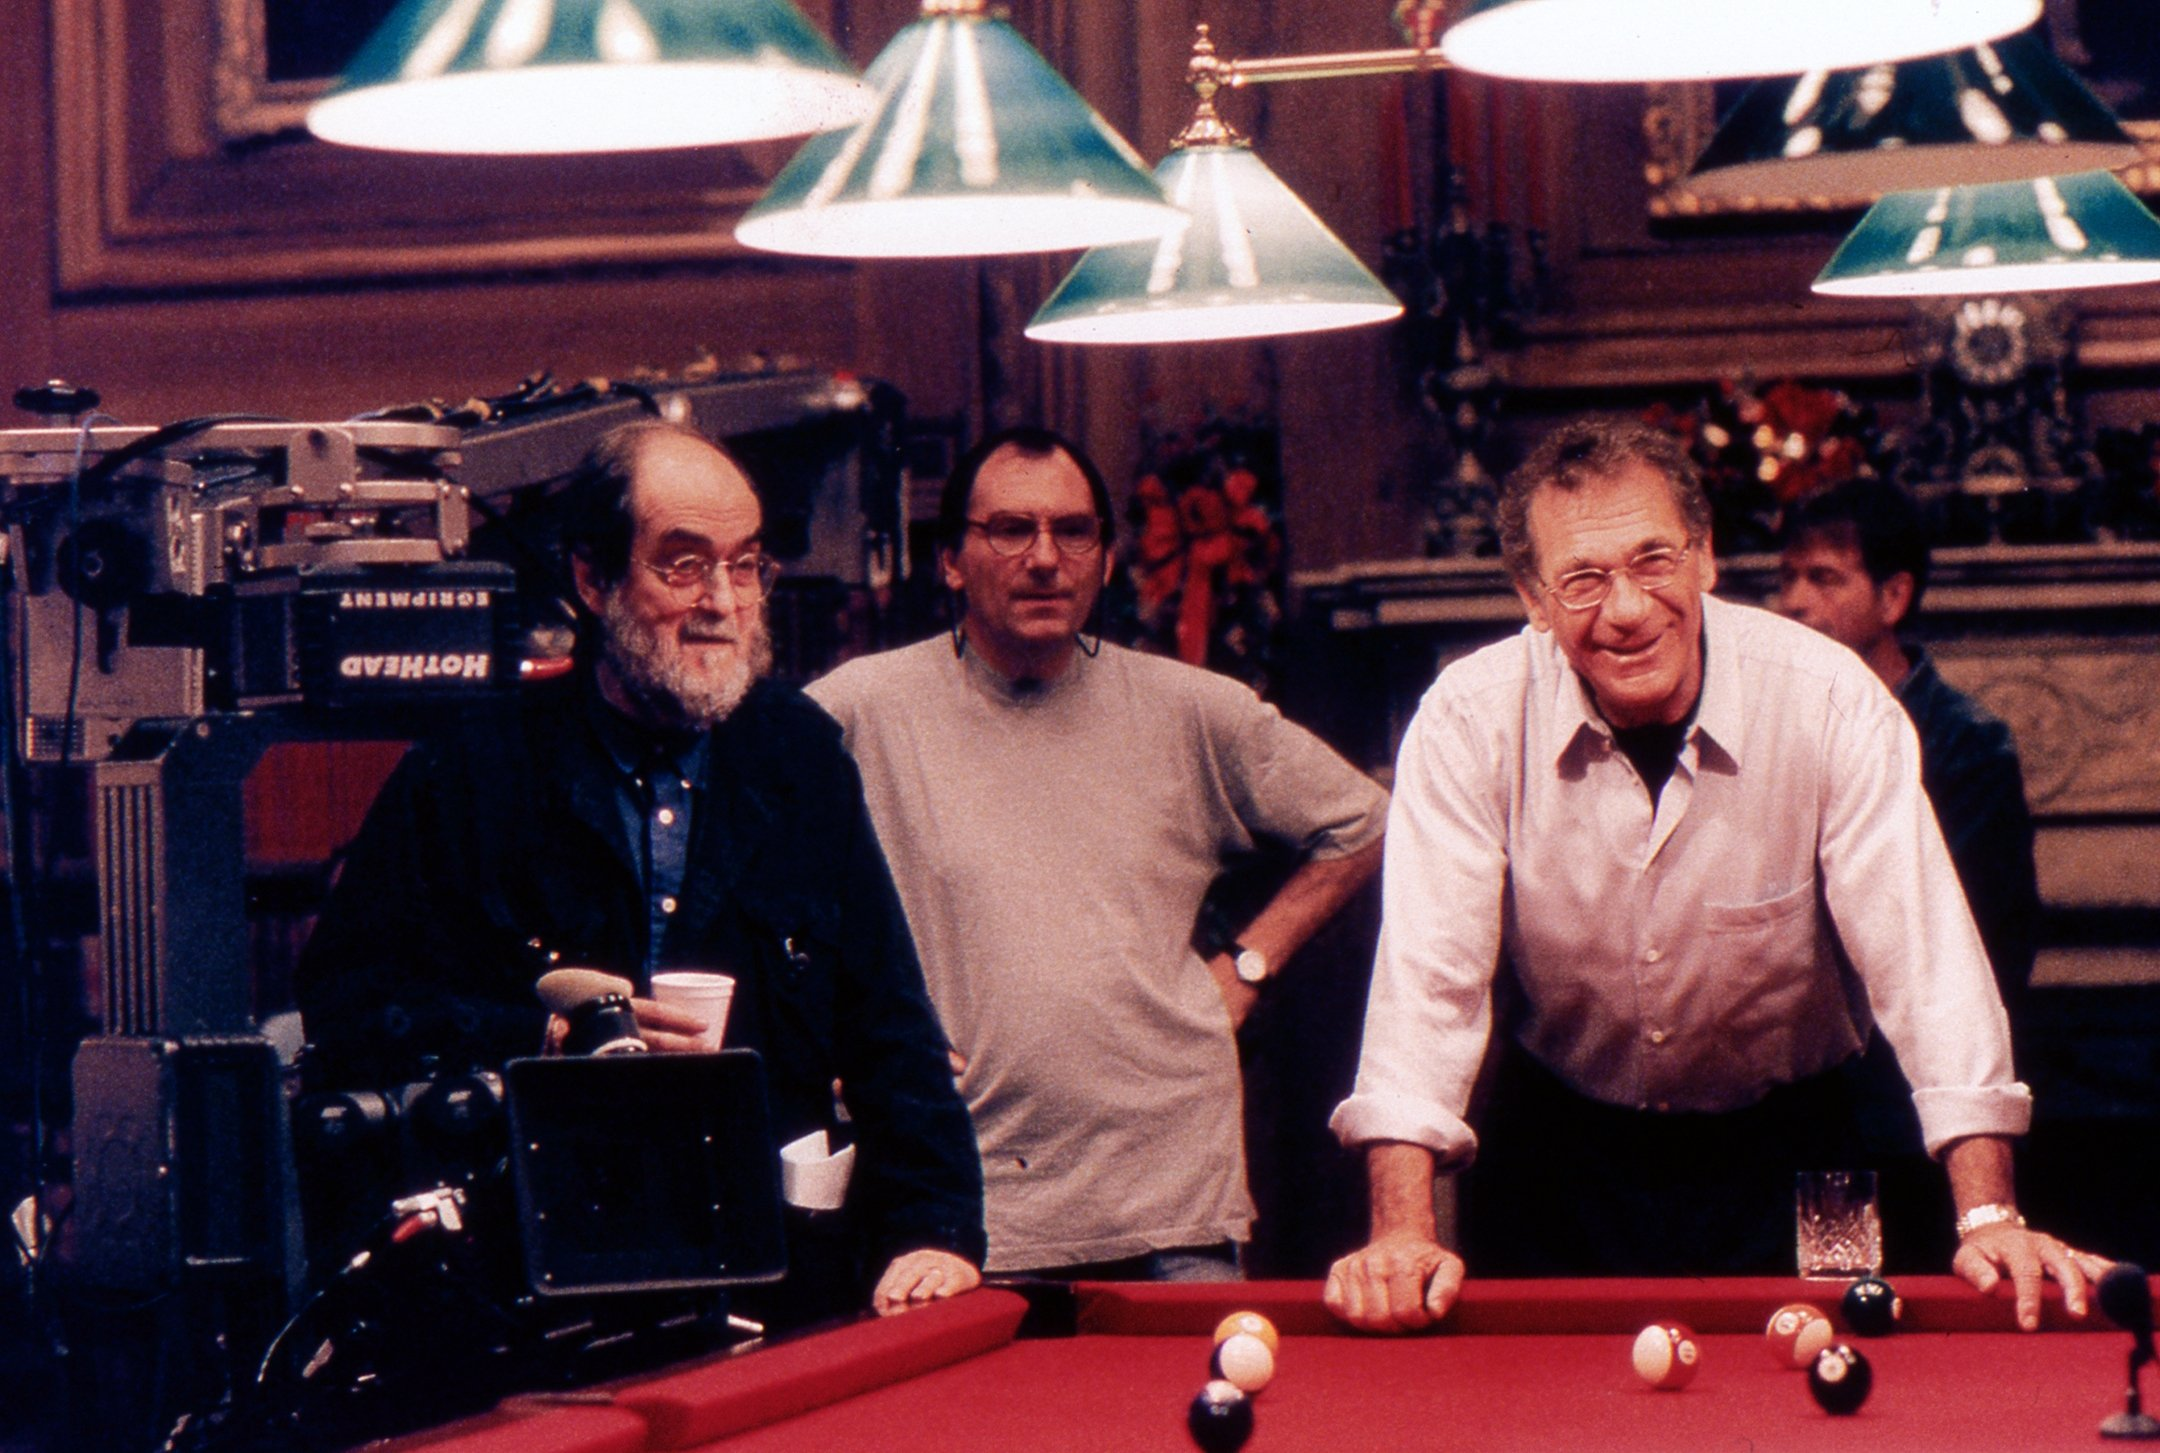 A Sword in the Bed: Eyes Wide Shut - The American Society of  Cinematographers